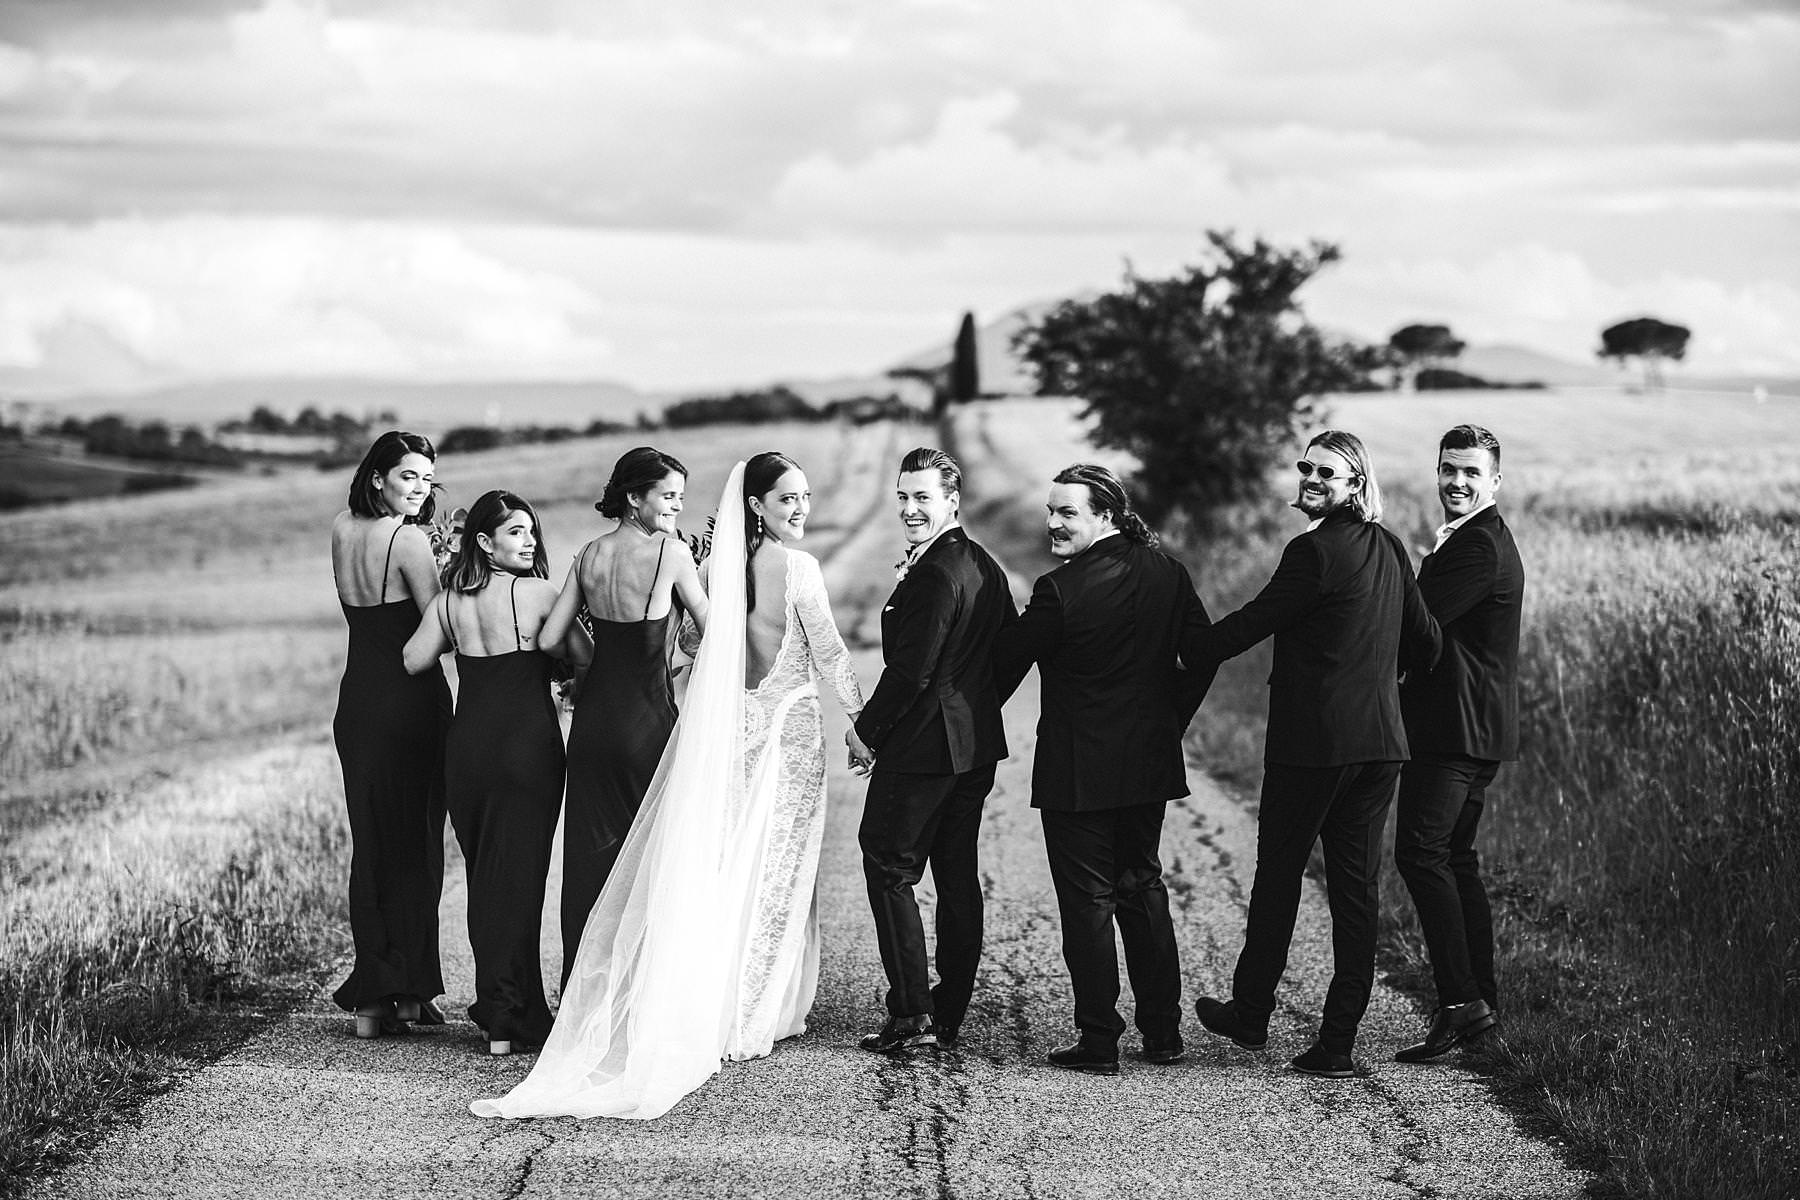 Exciting bridal party wedding photo in the countryside of Umbria with corn field as the background. Intimate destination symbolic wedding day at incredible historic venue Villa l'Antica Posta